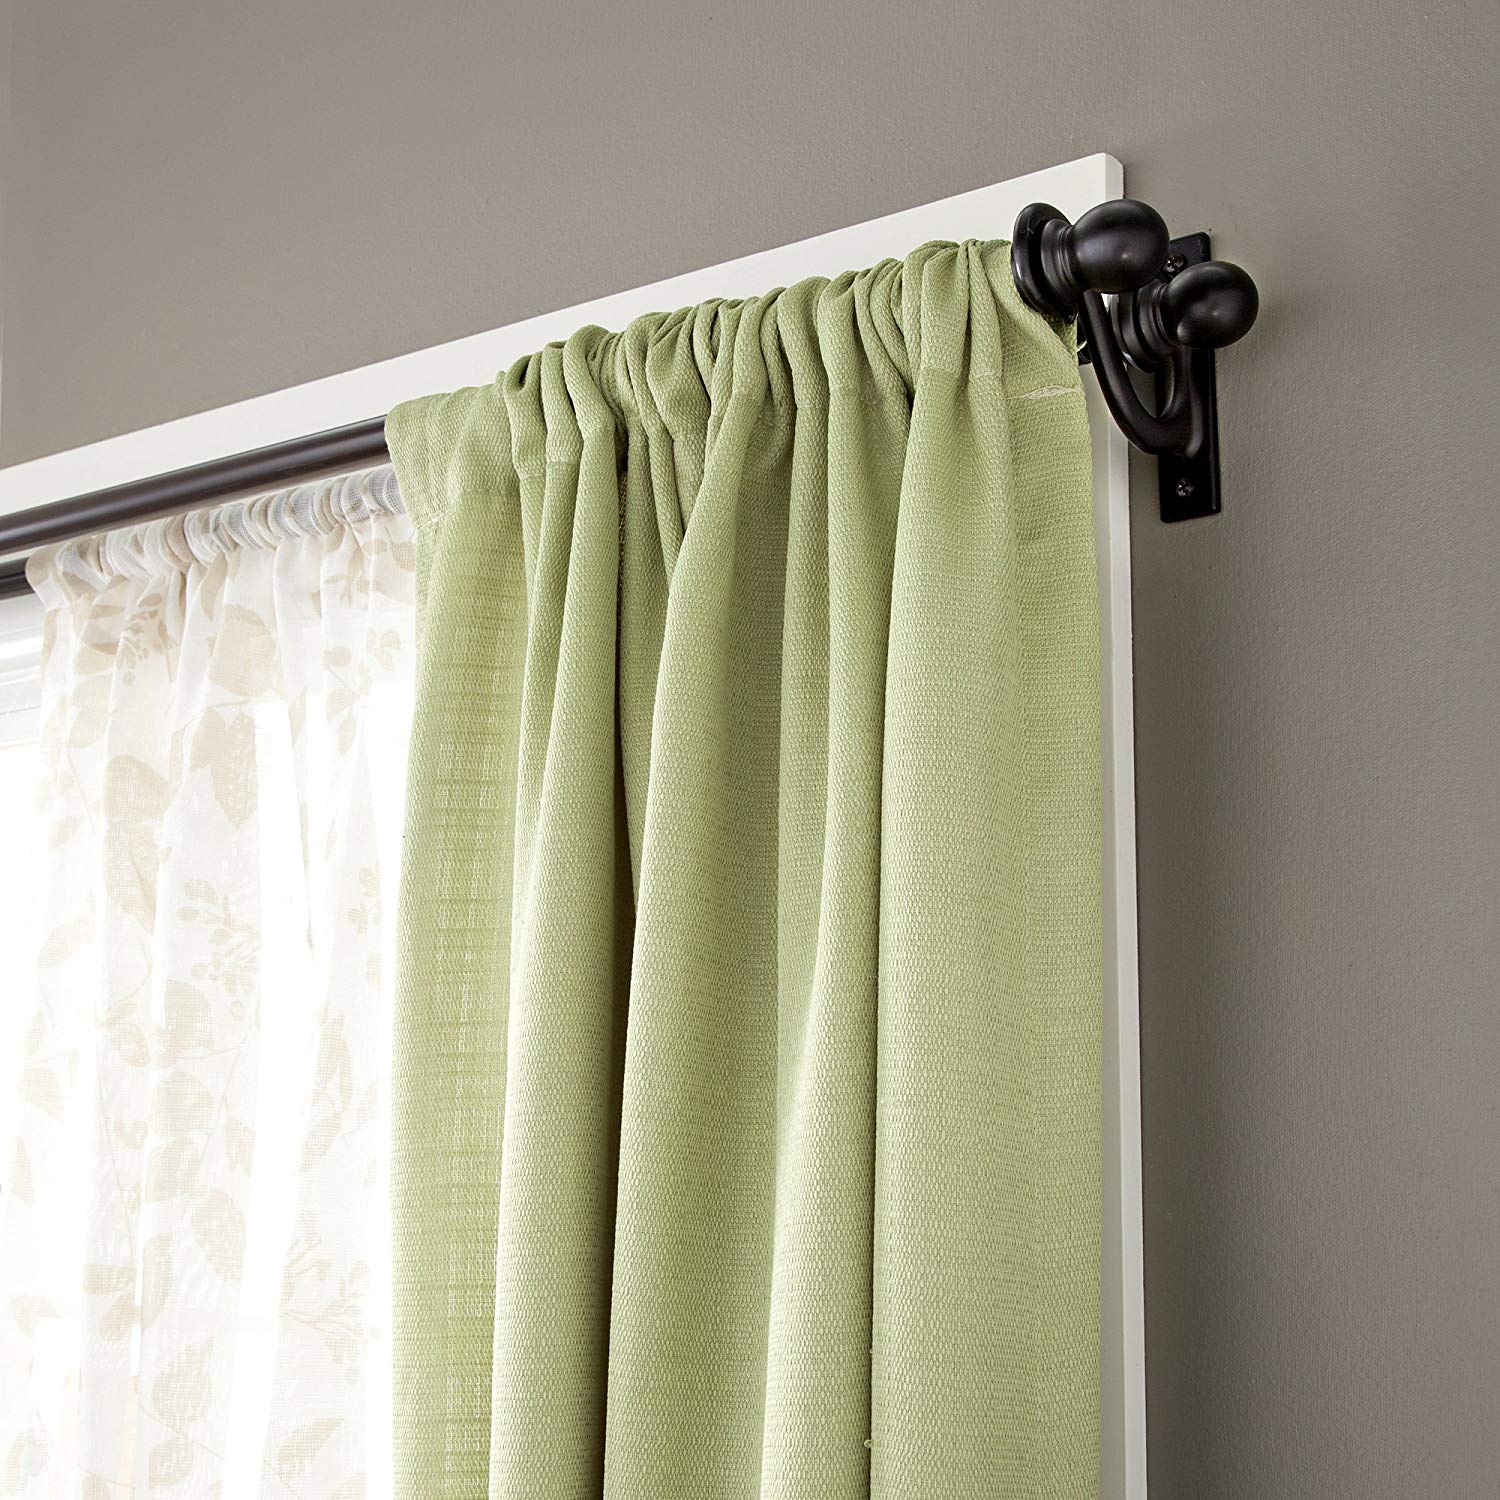 double curtain rods in 2020 review